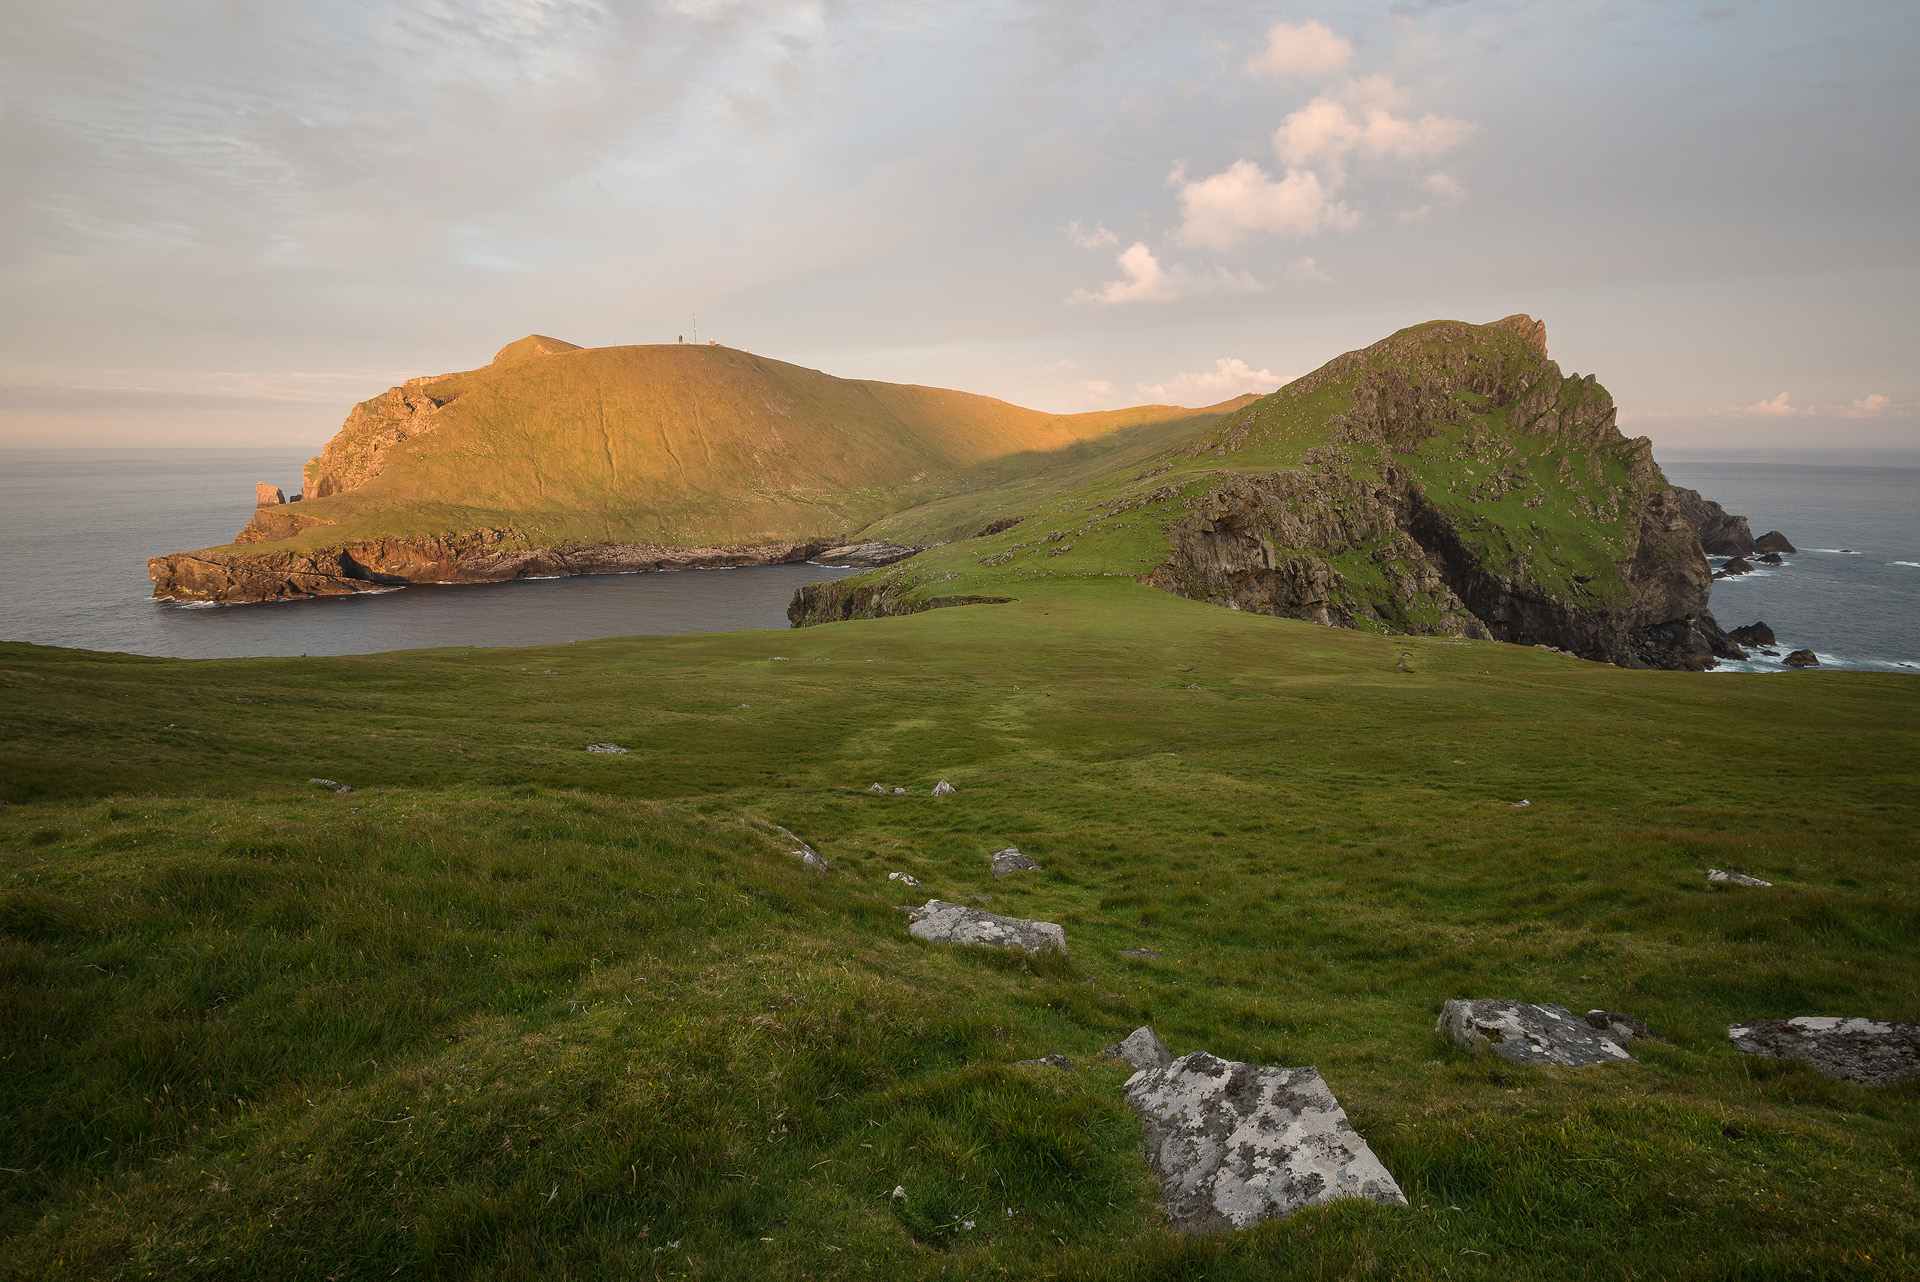 Evening Rays on Hirta, St. Kilda